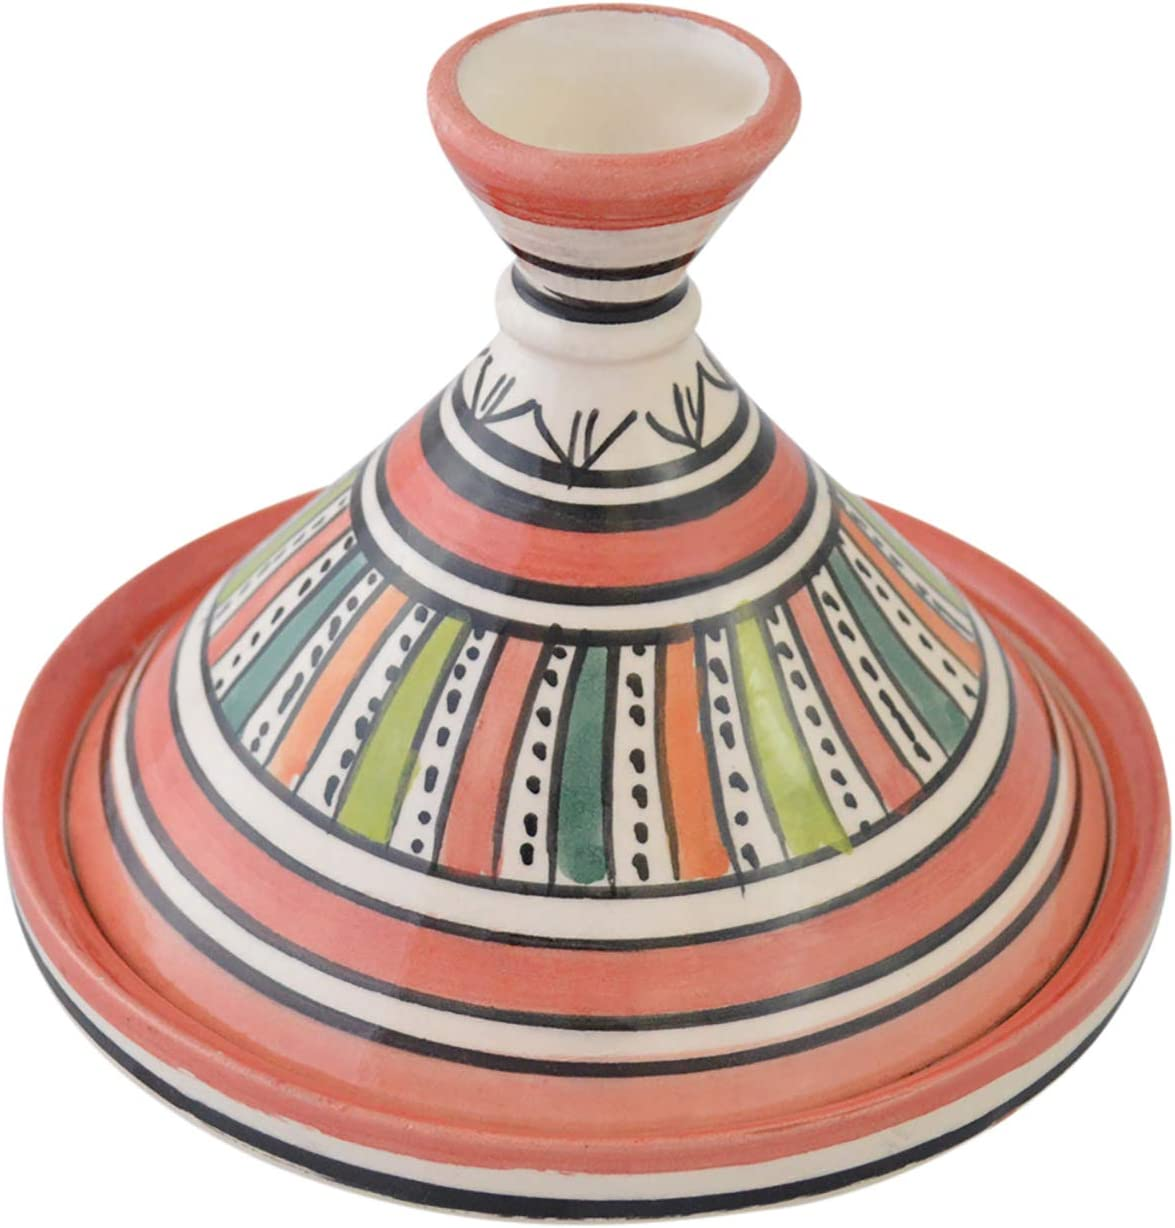 Moroccan Handmade Serving Challenge the lowest price Tagine Vivid colors Opening large release sale Exquisite Ceramic